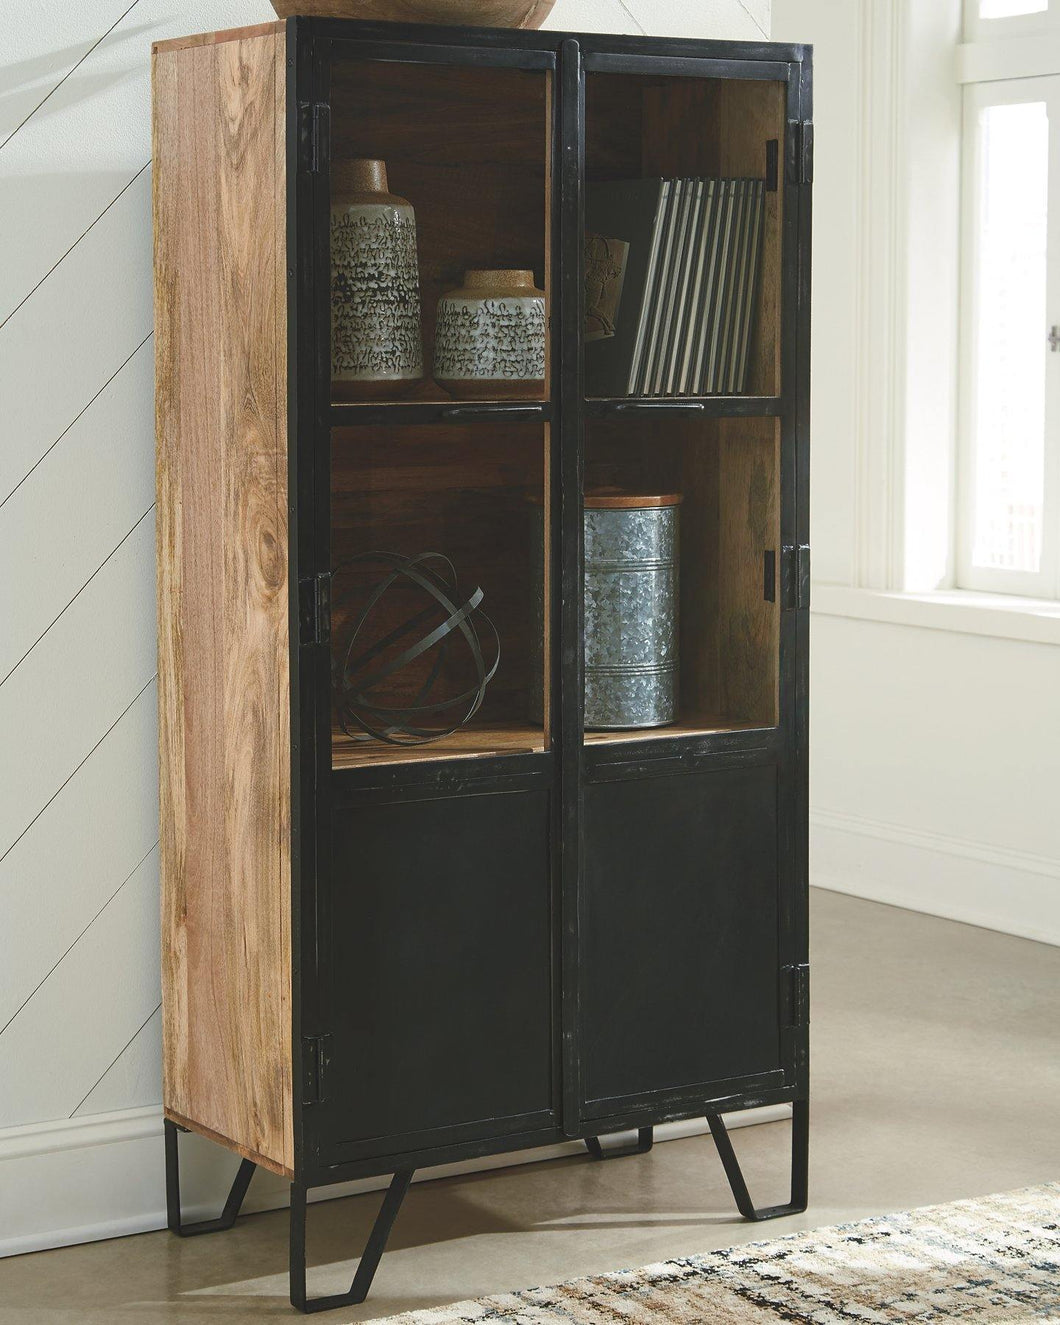 Gabinwell Bookcase A4000213 Storage and Organization By Ashley Furniture from sofafair